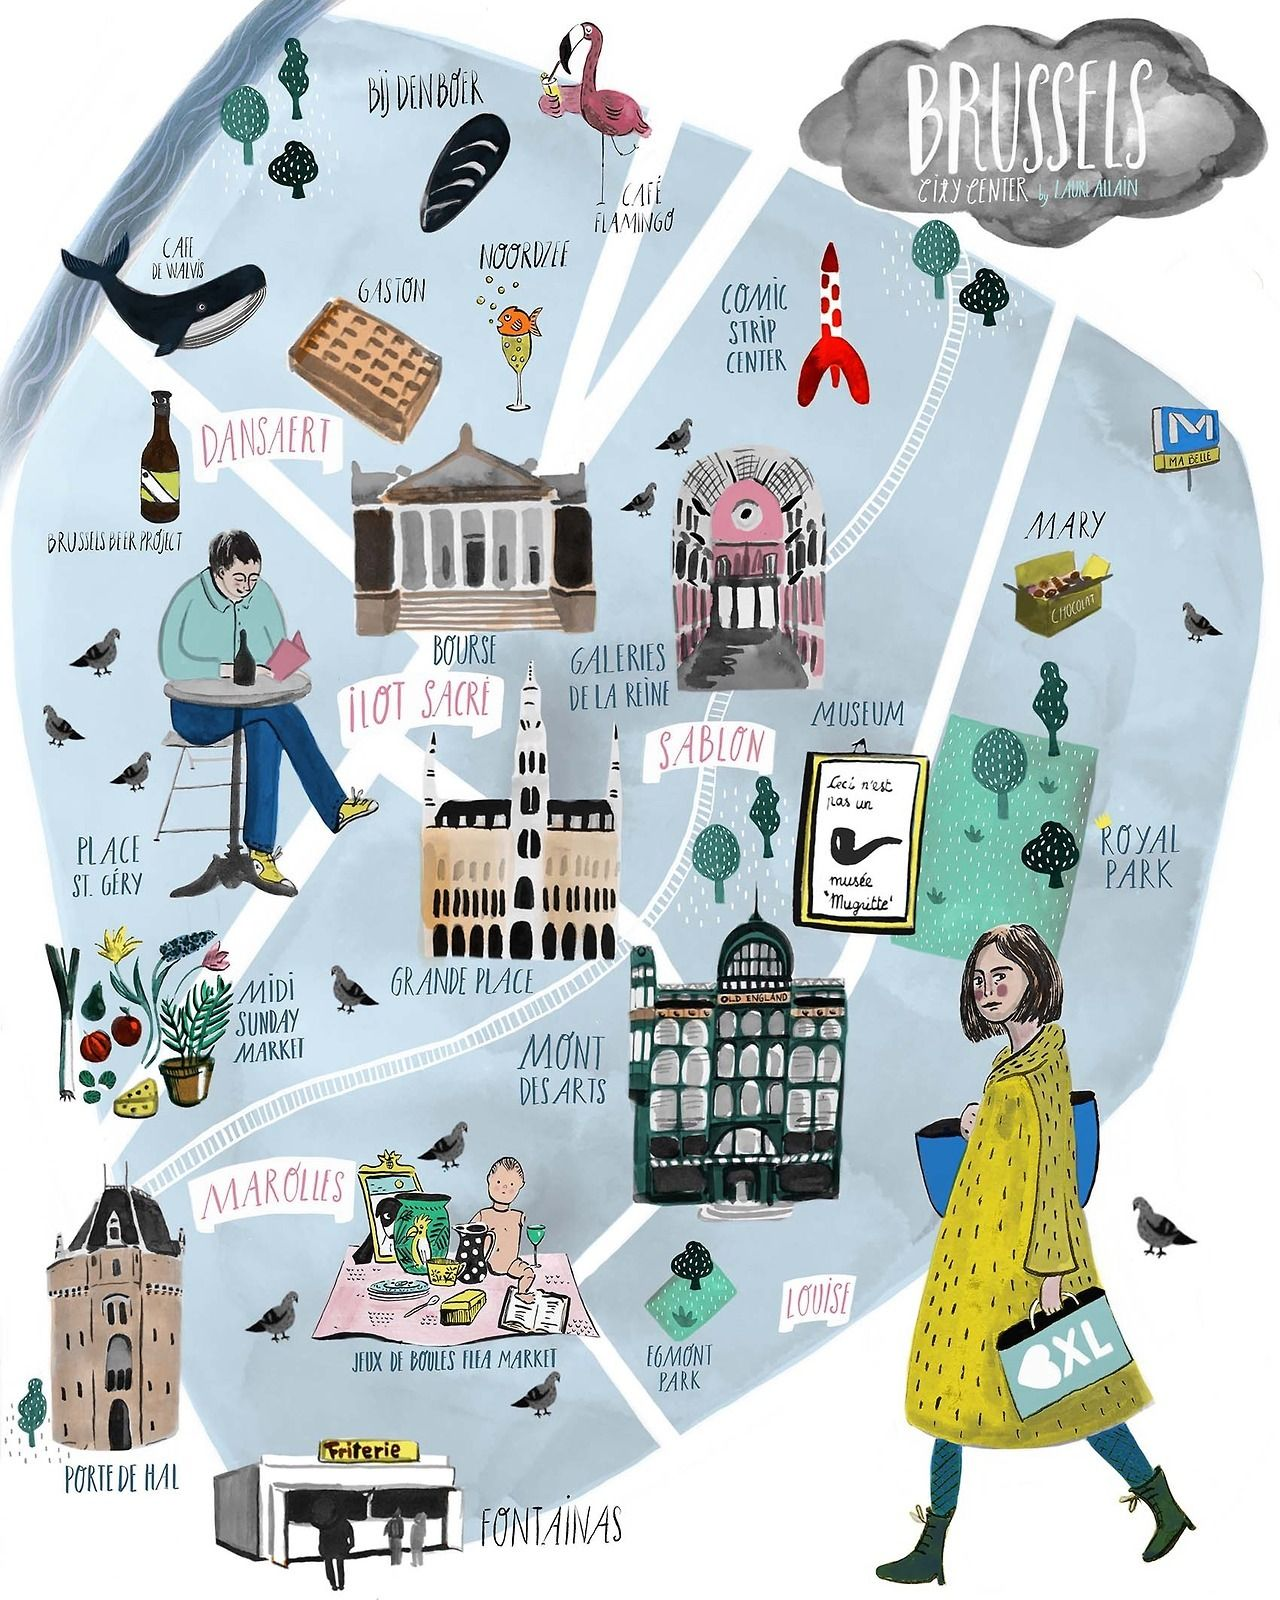 Pin by de sign on mapping | Belgium map, Travel illustration ...